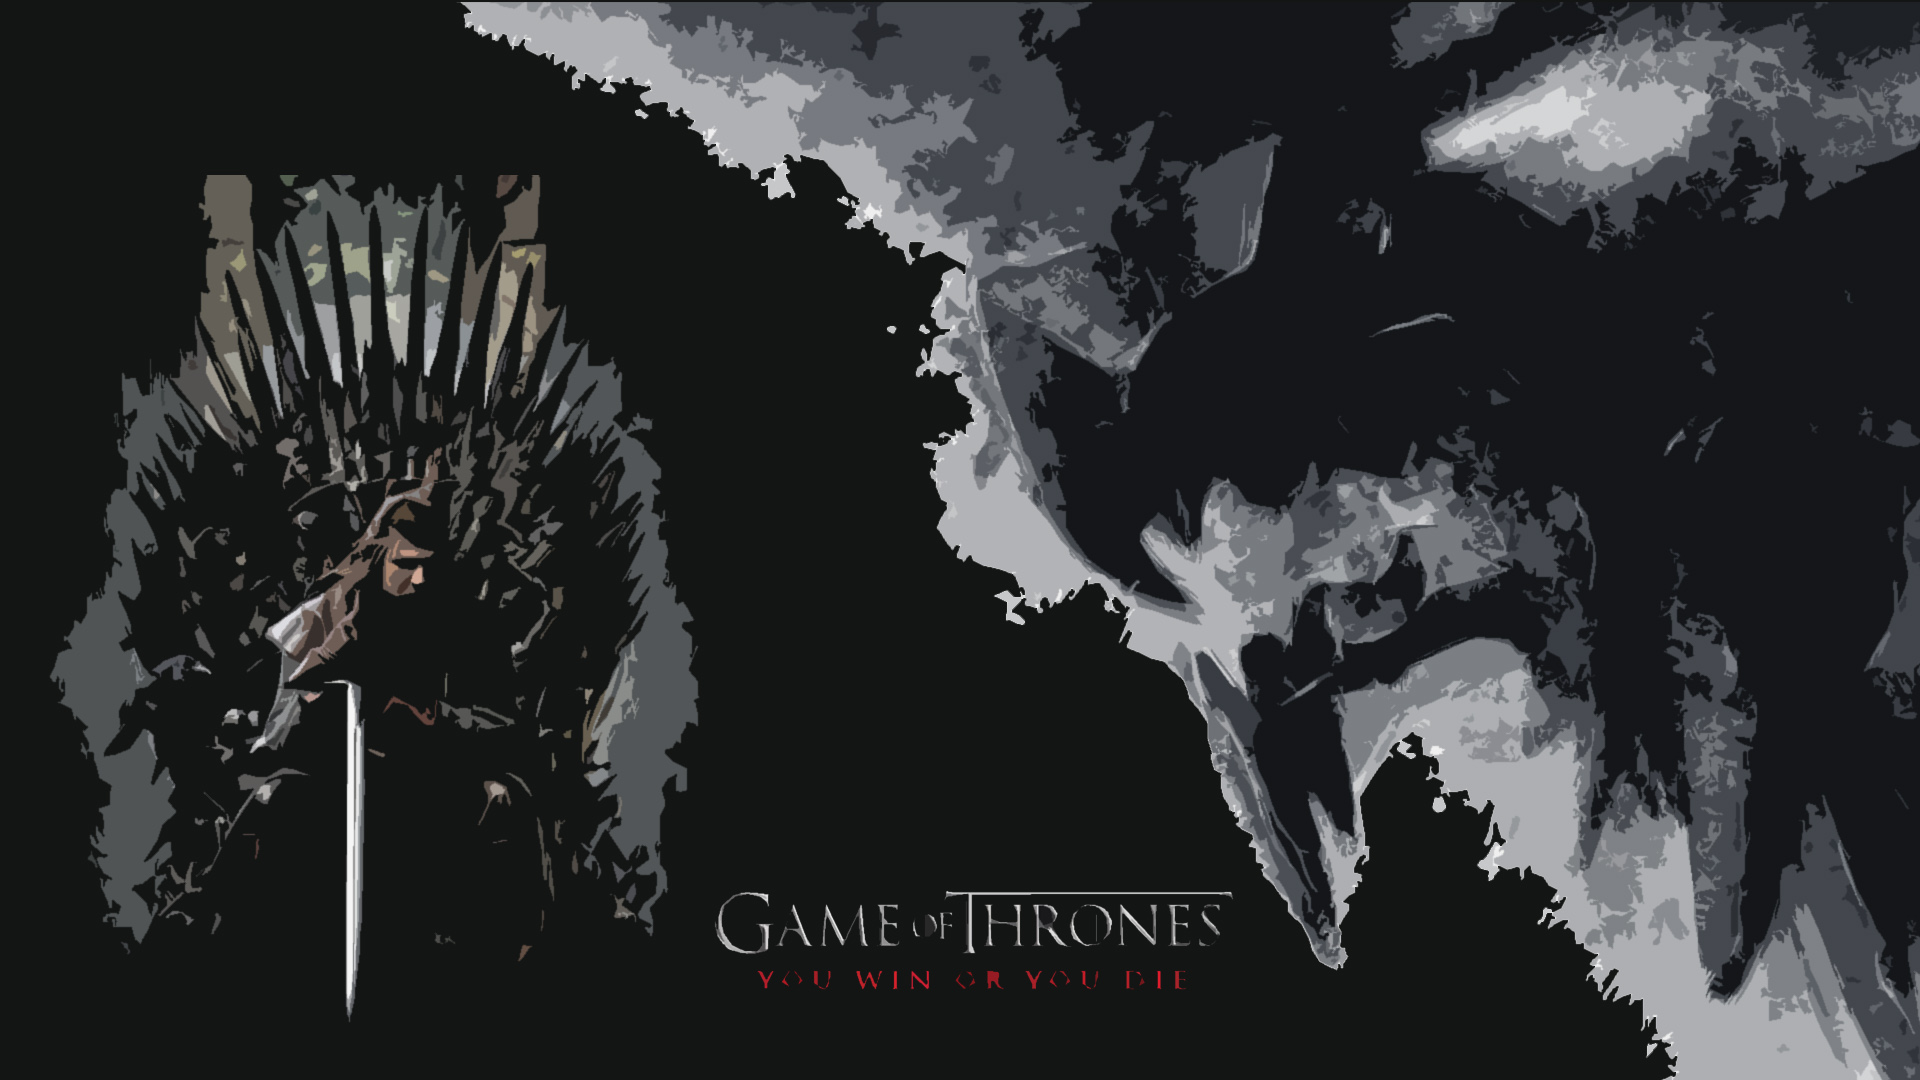 game of thrones wallpapertworenniks on deviantart